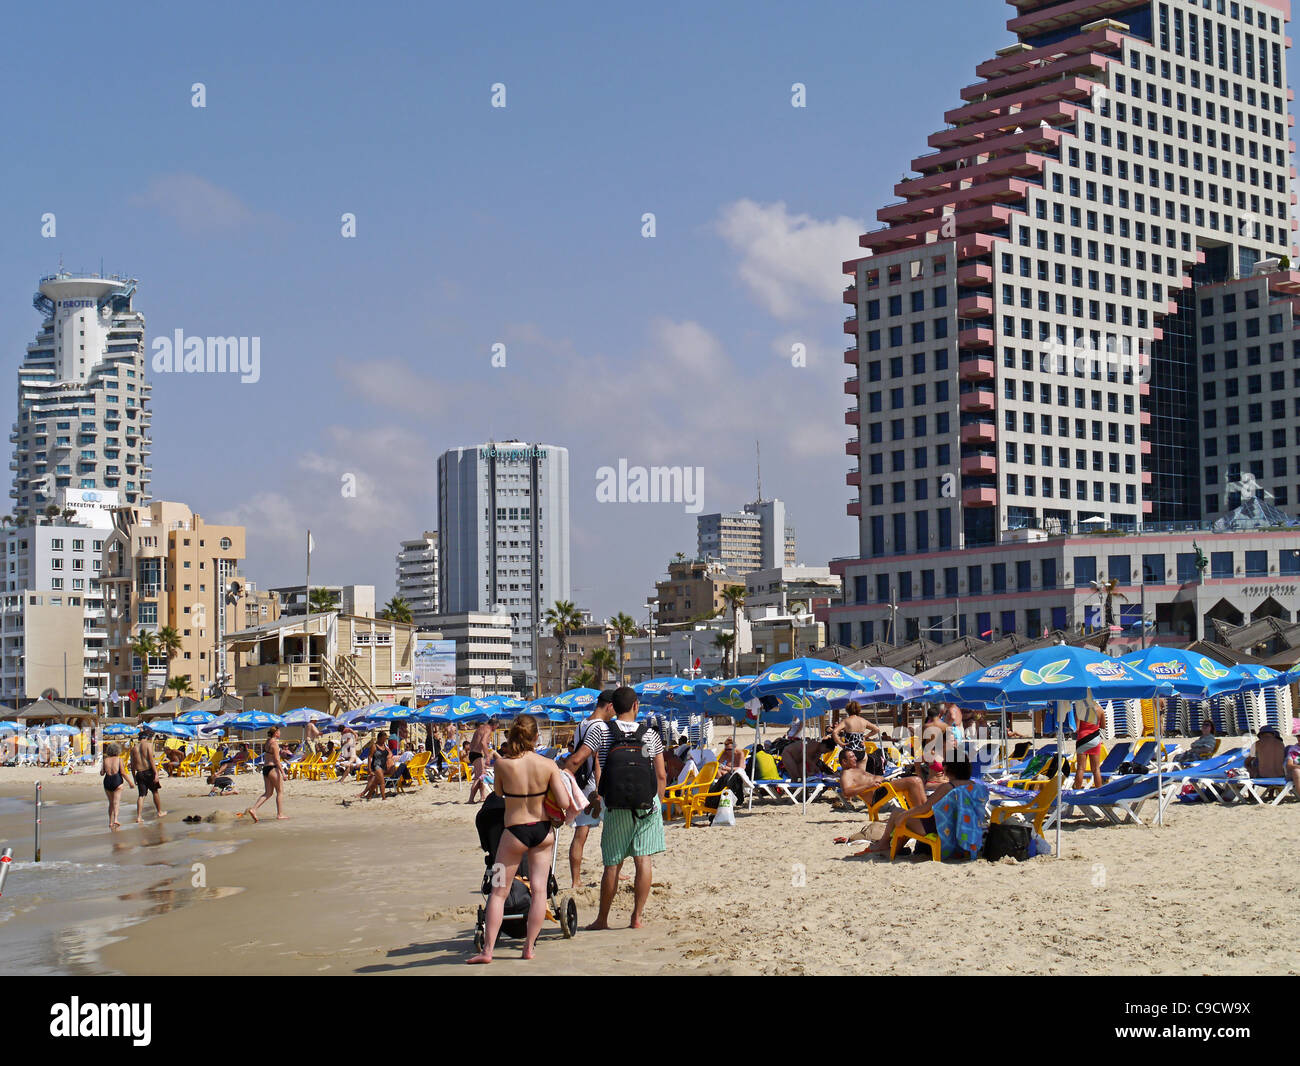 Tel Aviv Beach and Waterfront Hotels - Stock Image